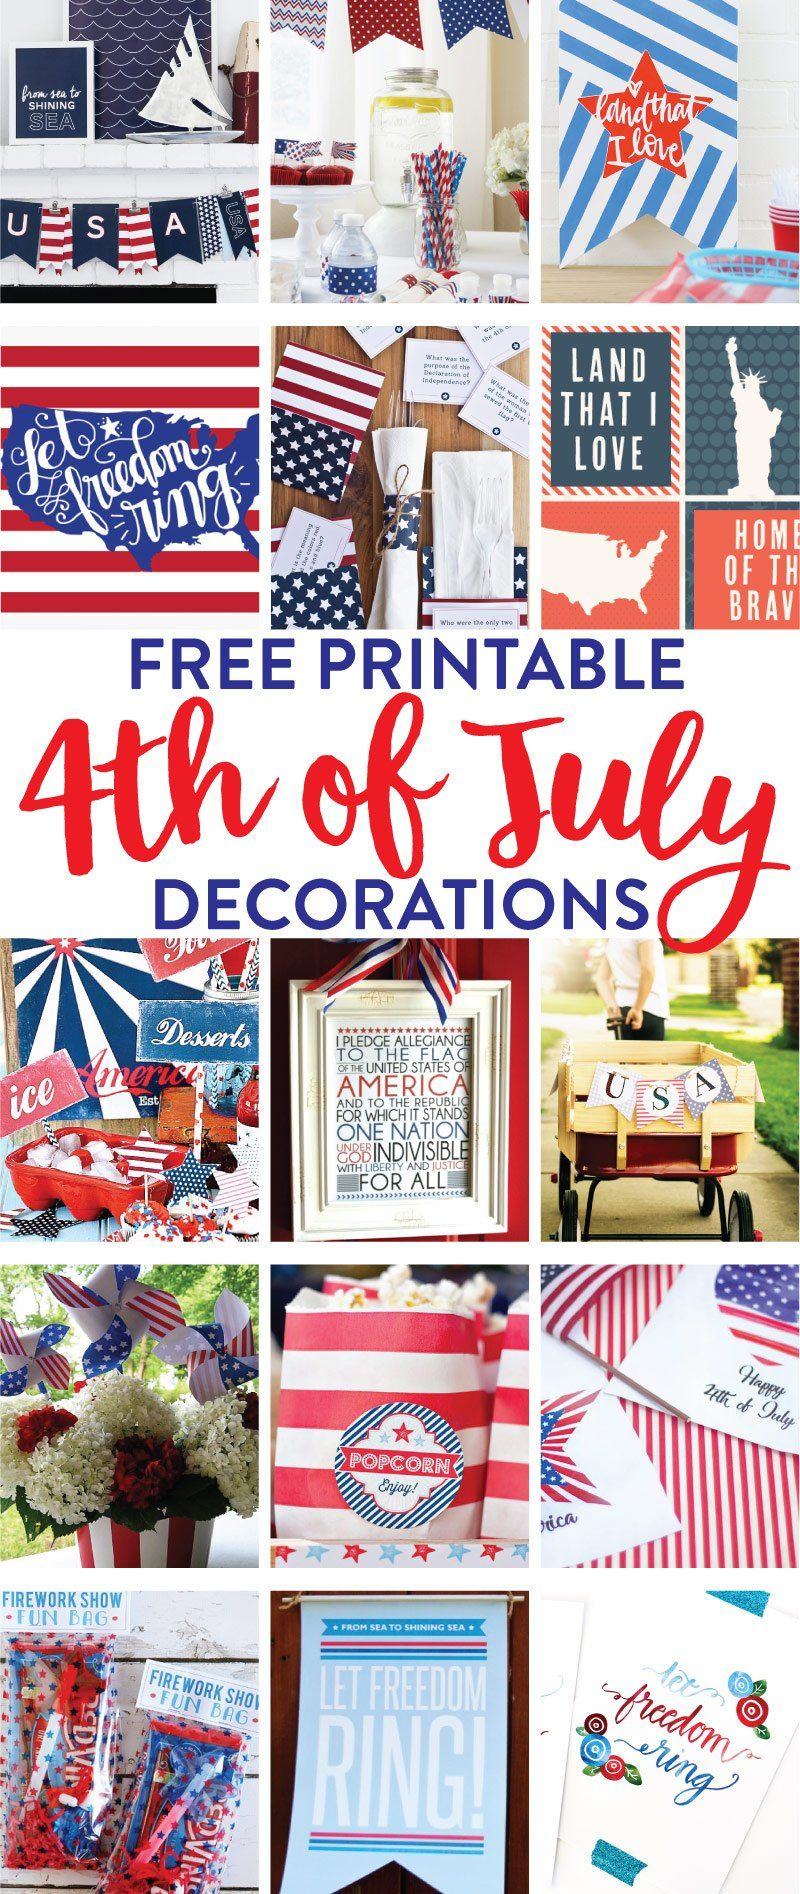 Forum on this topic: 15 Fun 4th of July Party Ideas , 15-fun-4th-of-july-party-ideas/